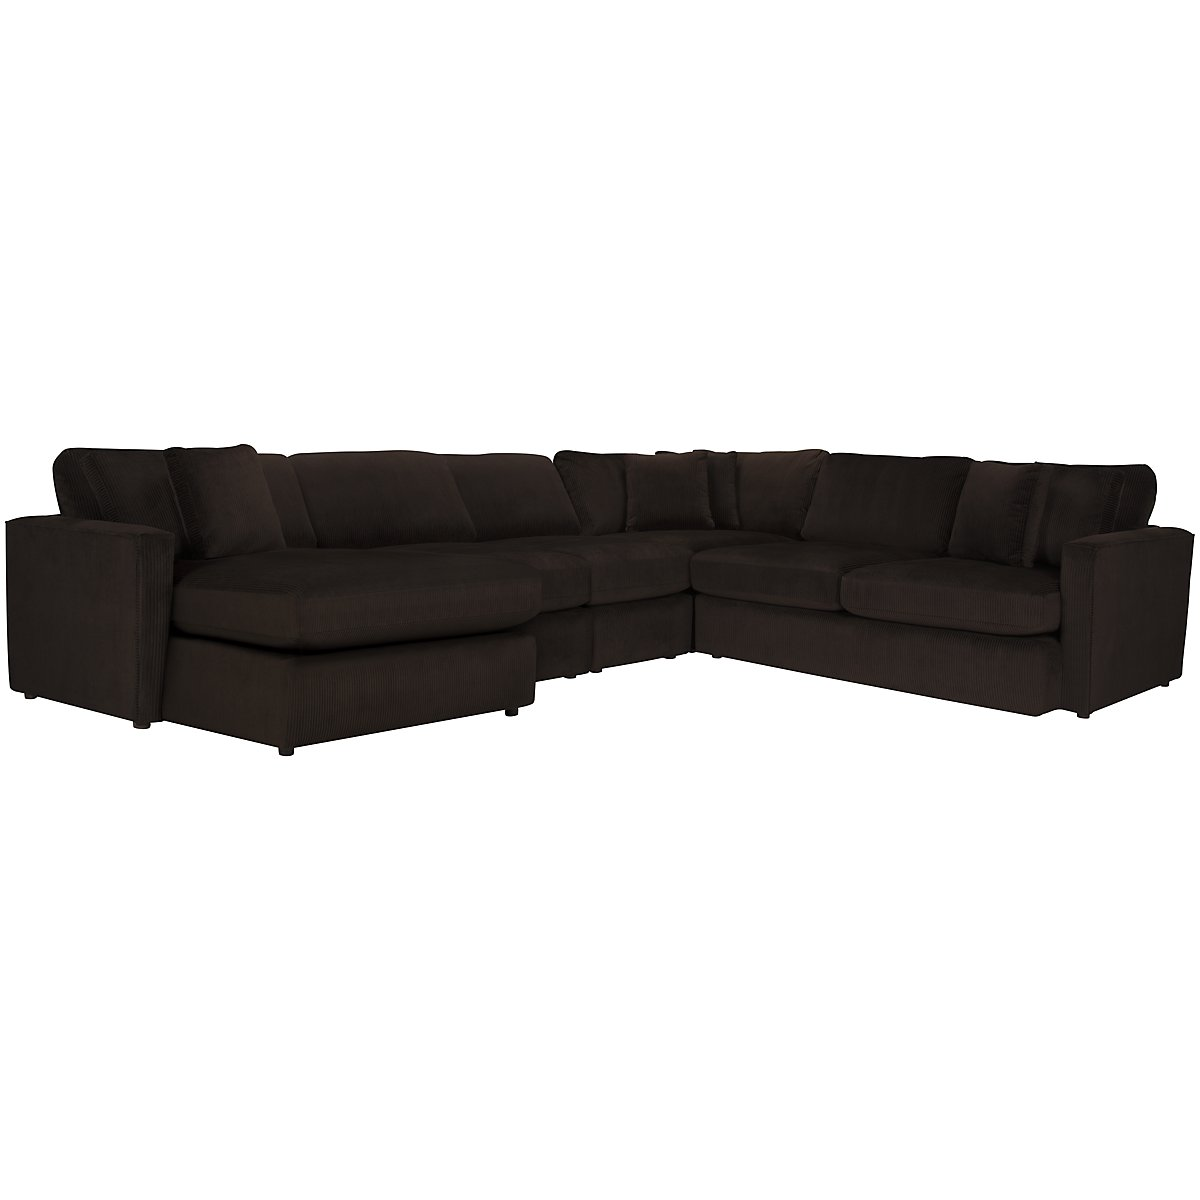 Tara2 Dark Brown Microfiber Left Chaise Sectional